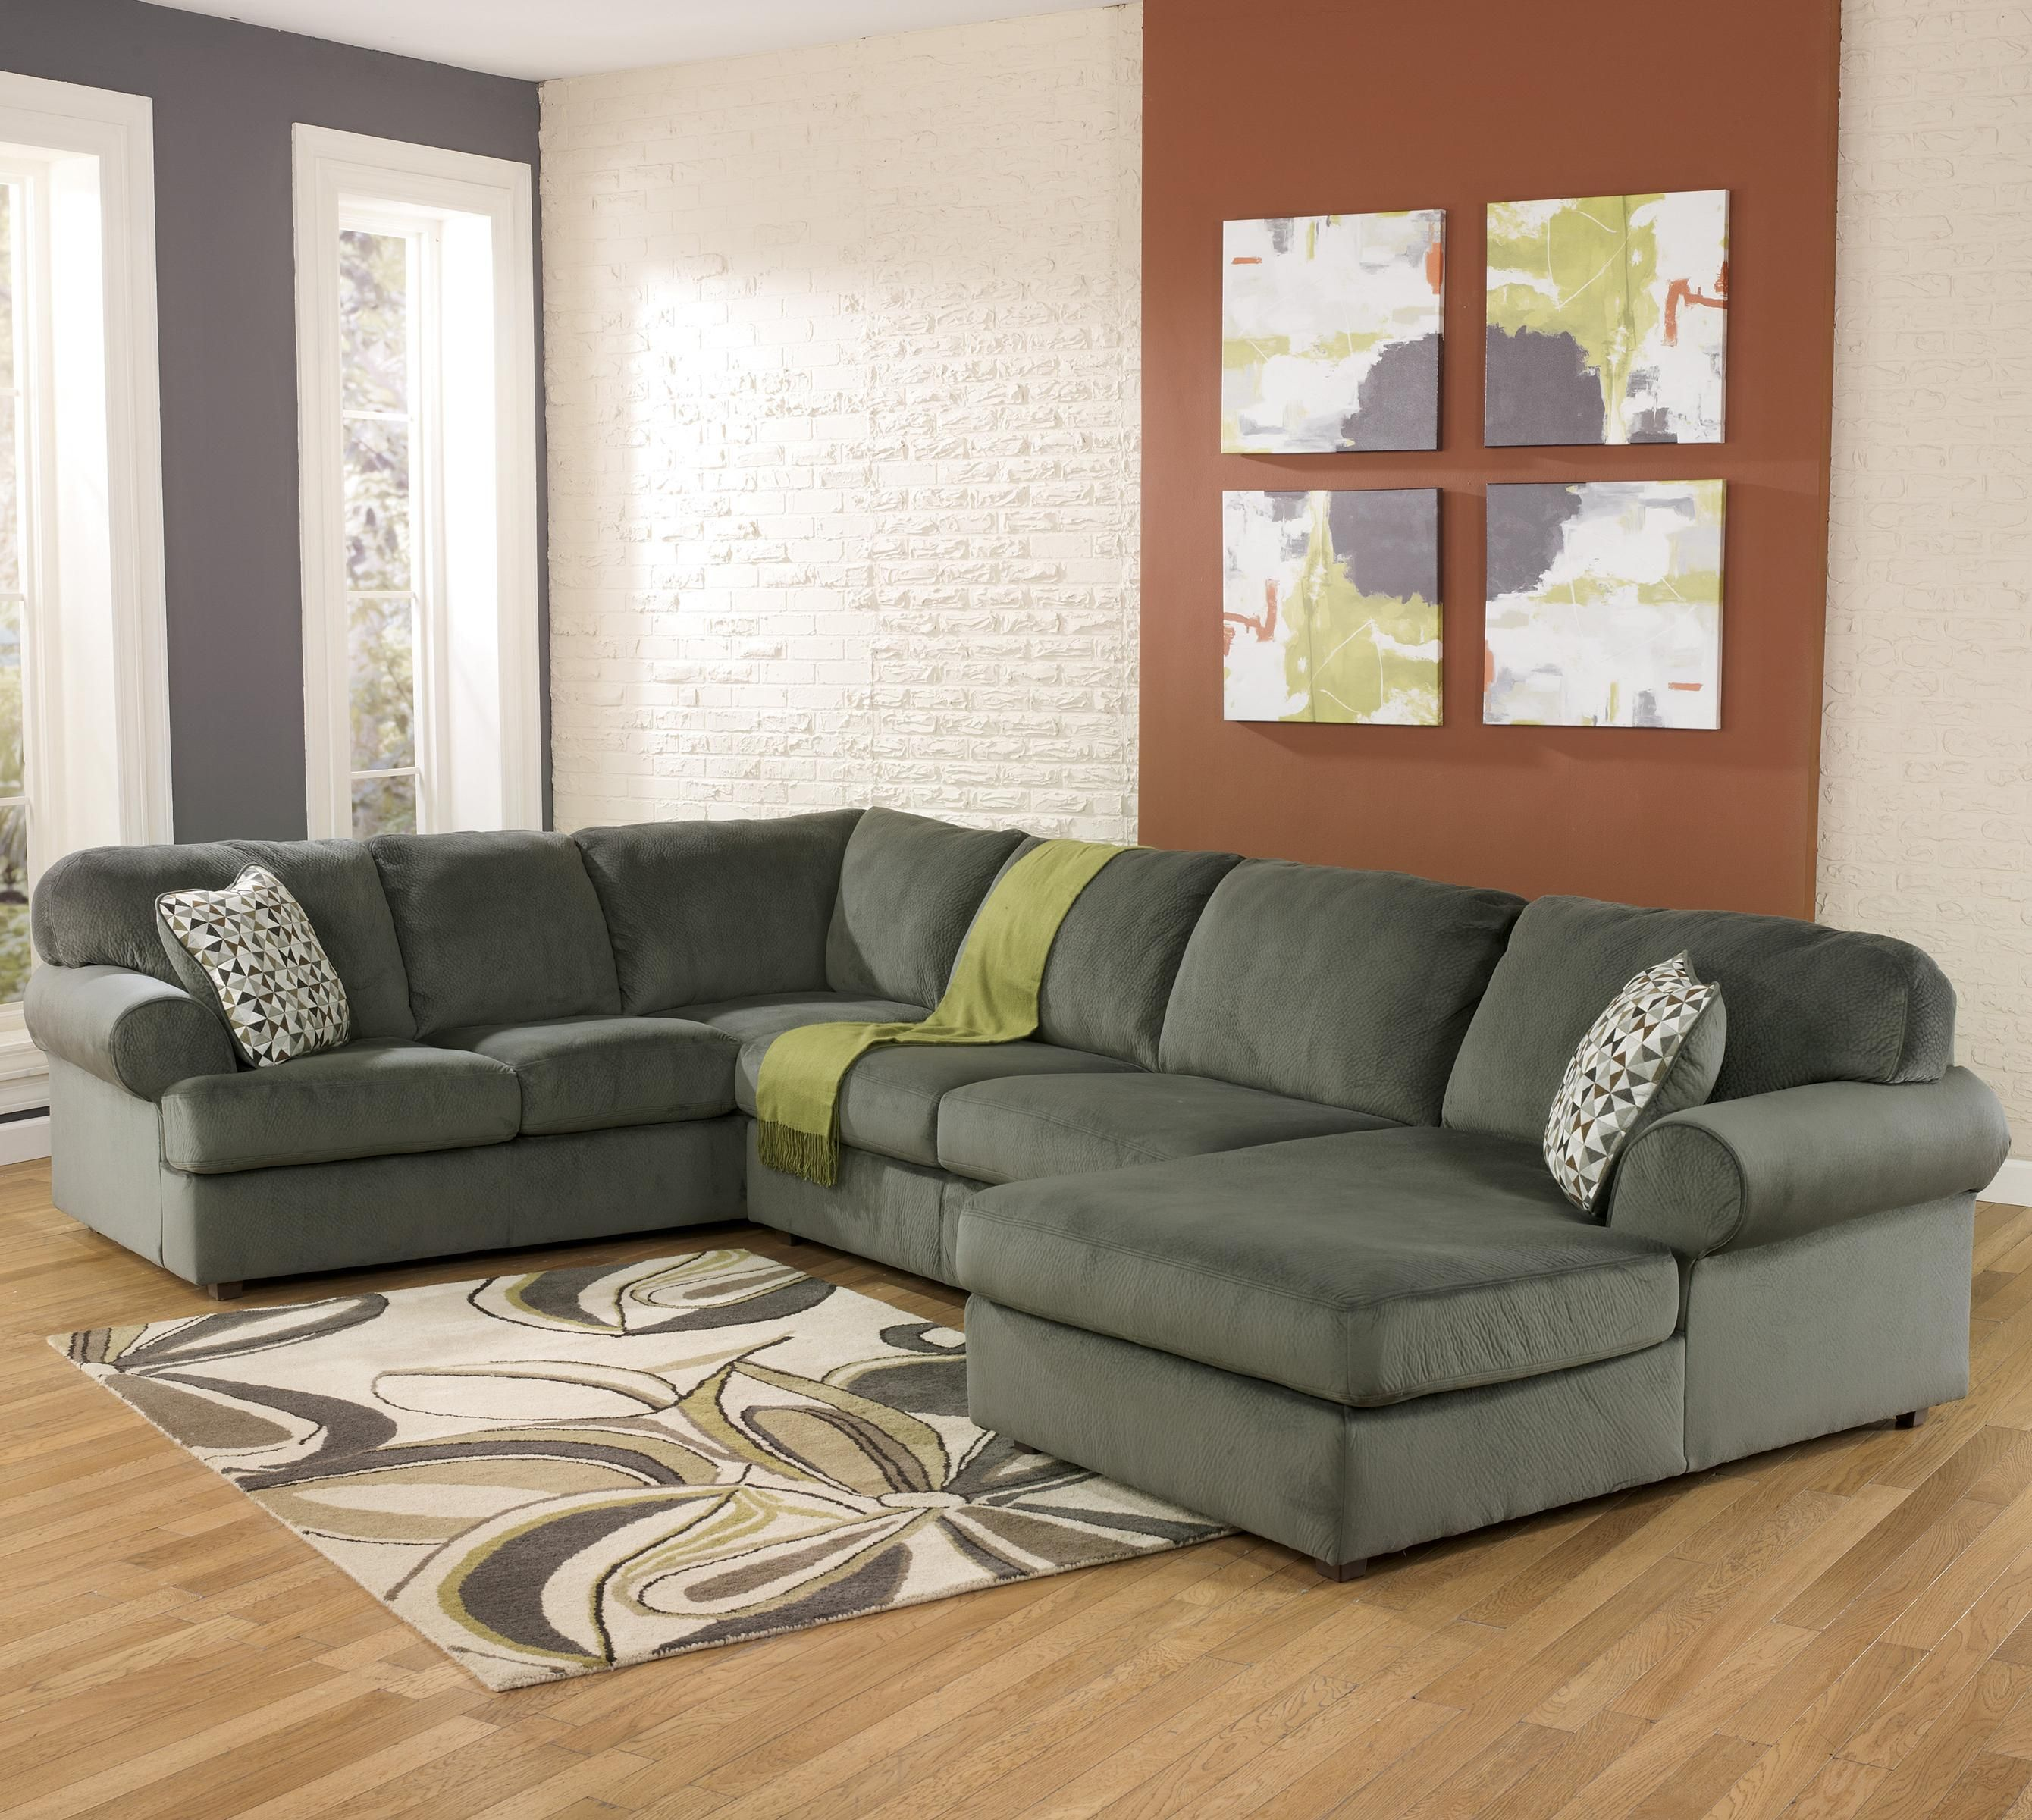 Jessa Place Pewter Casual Sectional Sofa with Right Chaise by